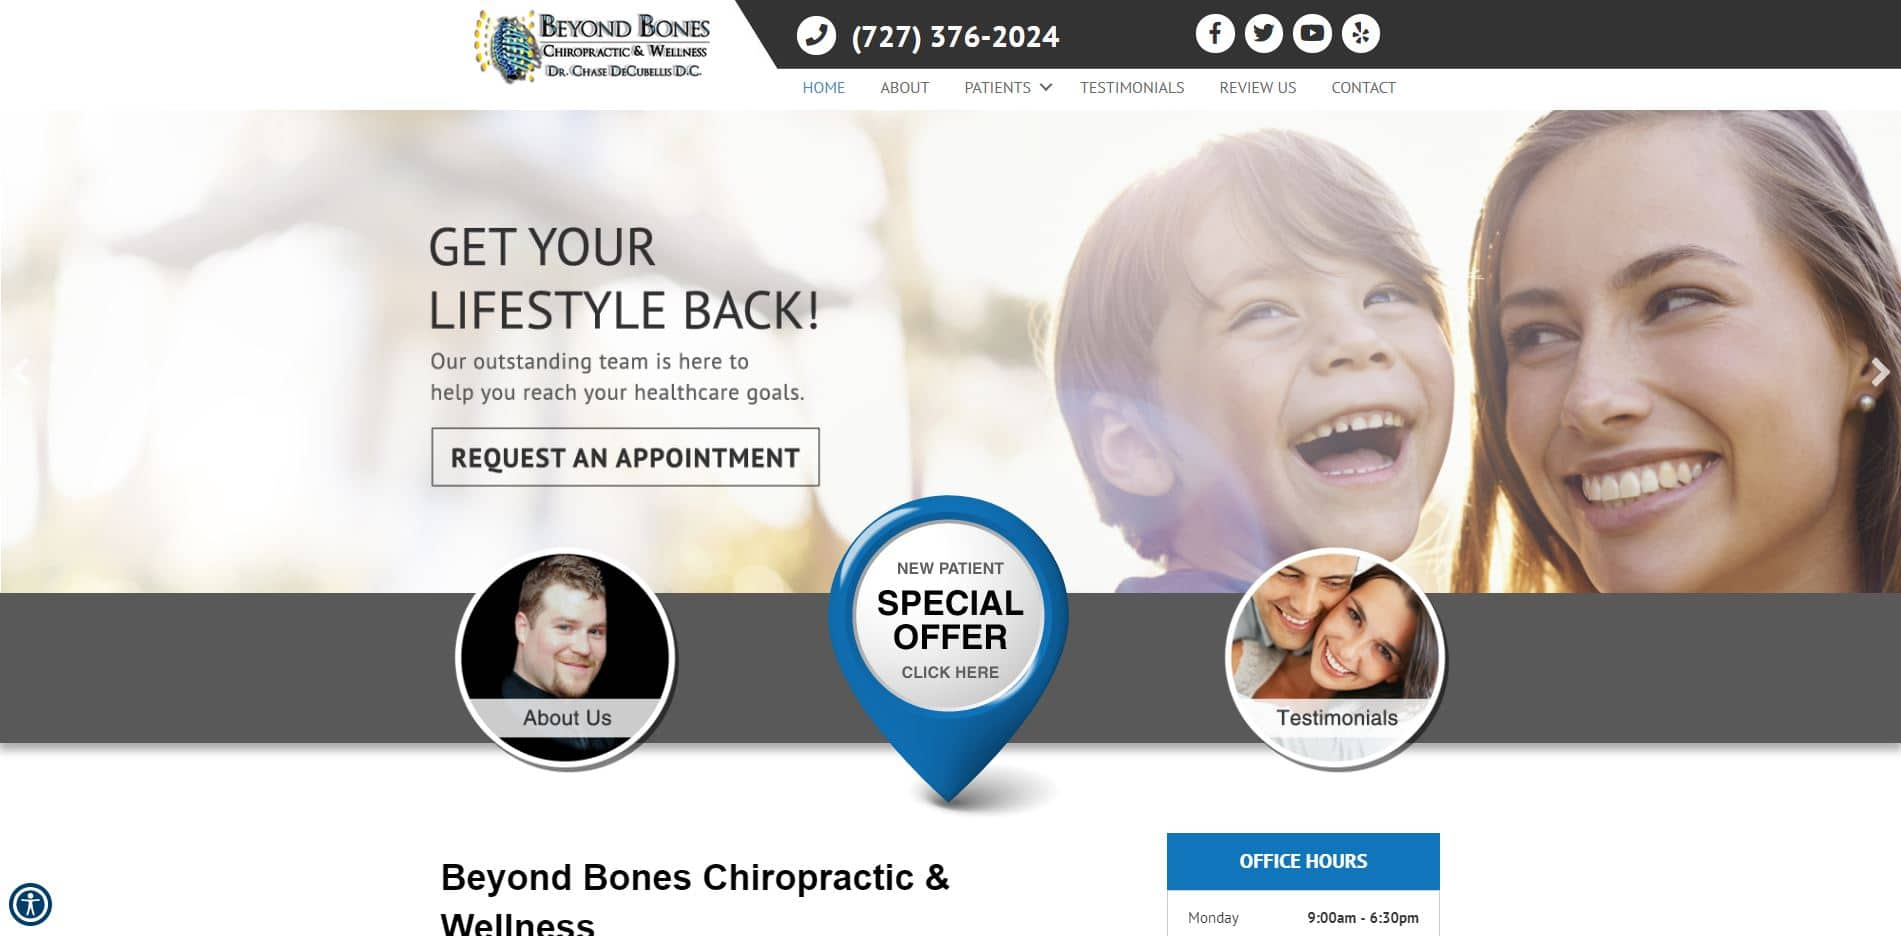 Chiropractor in New Port Richey